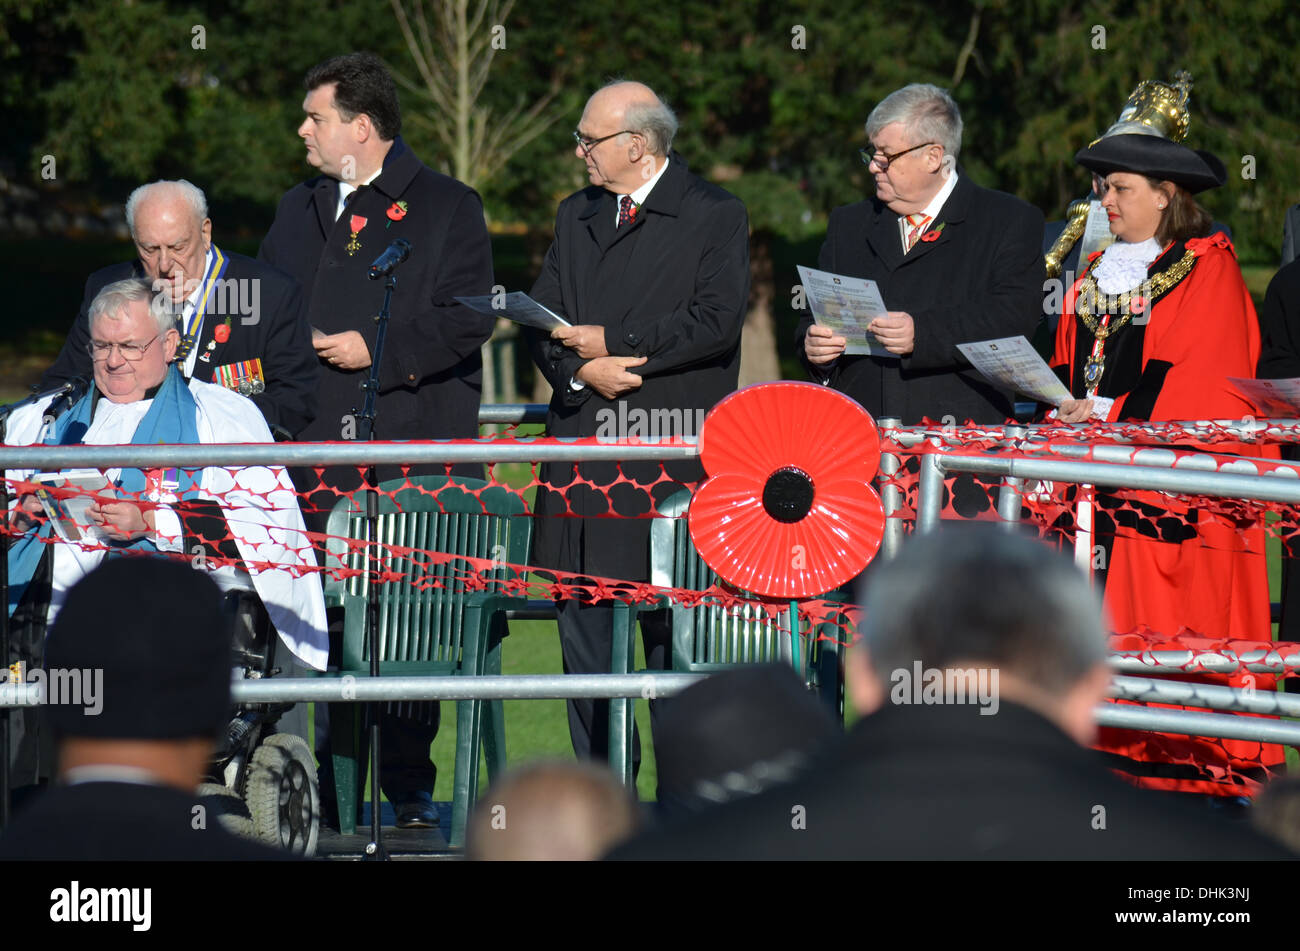 Remembrance Sunday, Nov 11th, Twickenham cenotaph,the Mayoress the M.P.and dignitaries celebrate before the symbol of a poppy. - Stock Image